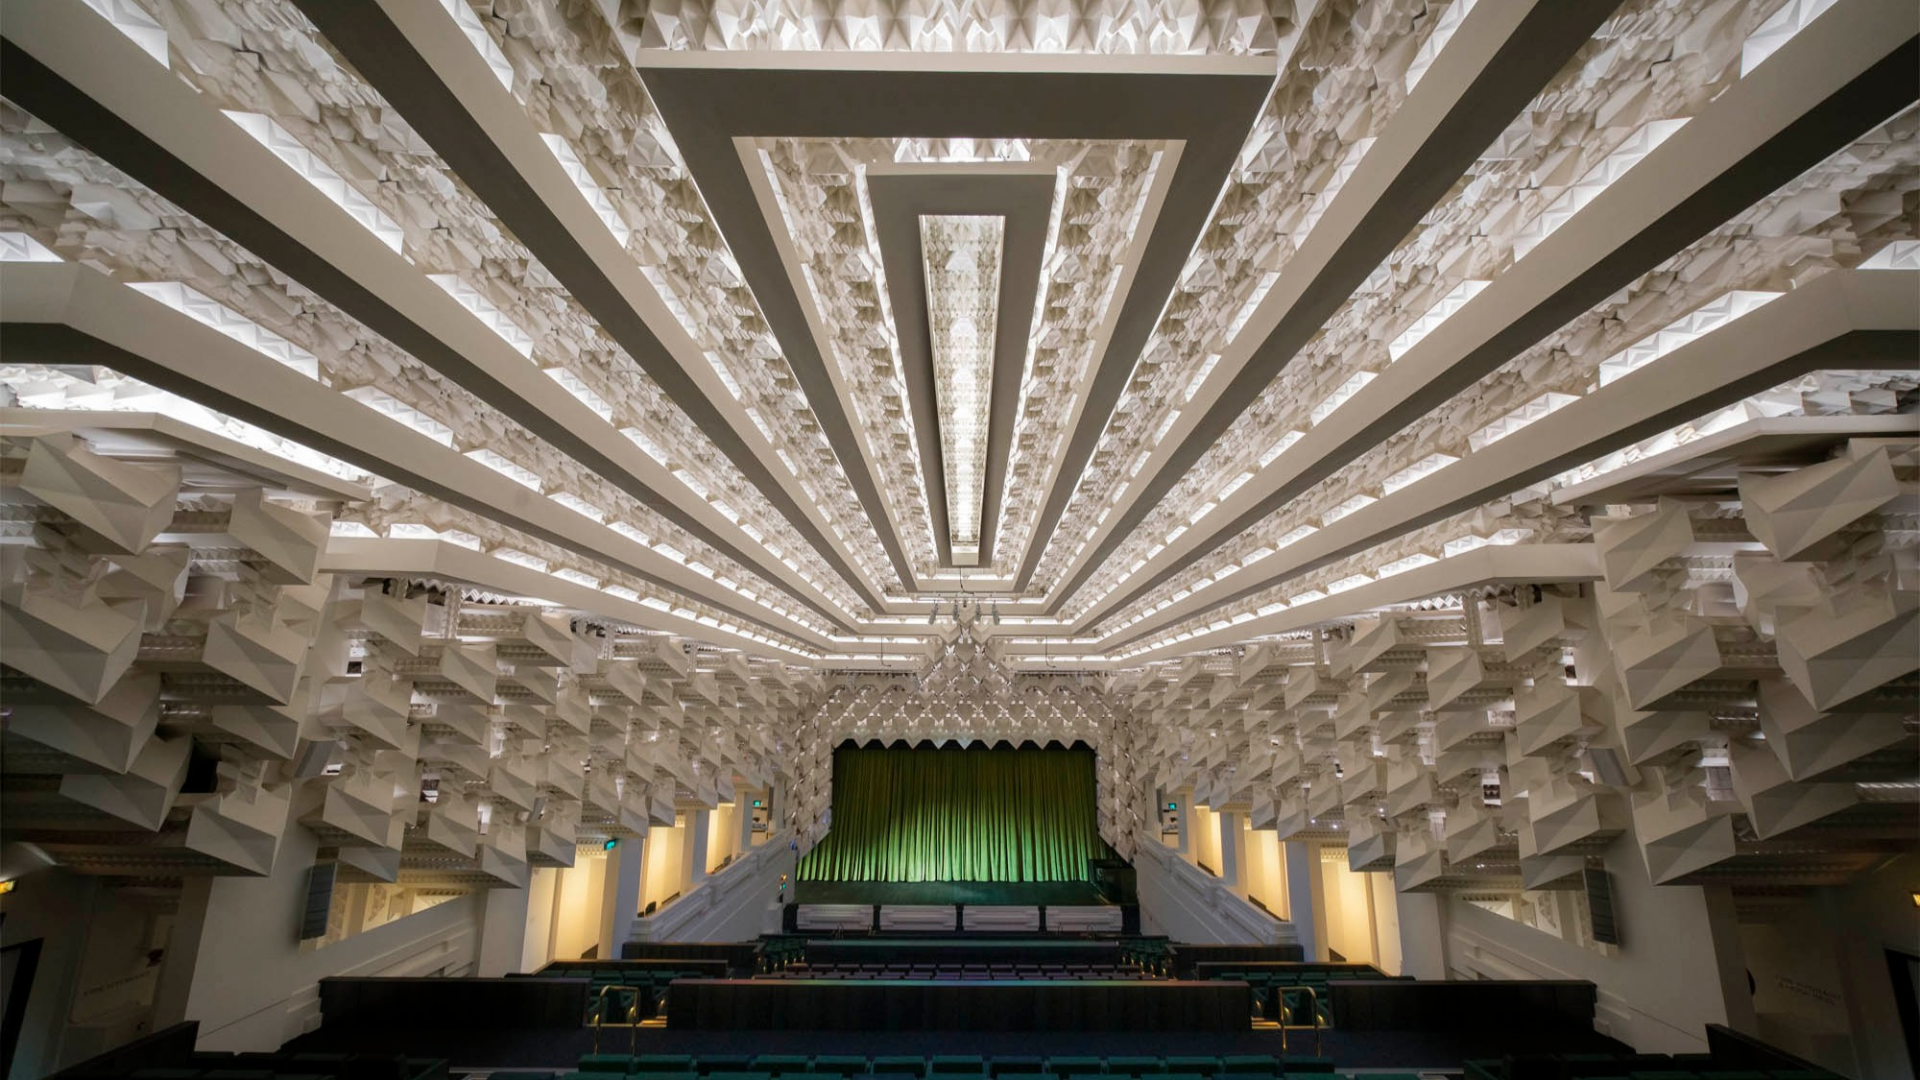 Interior of the geometric Theatre ceiling inside The Capitol.